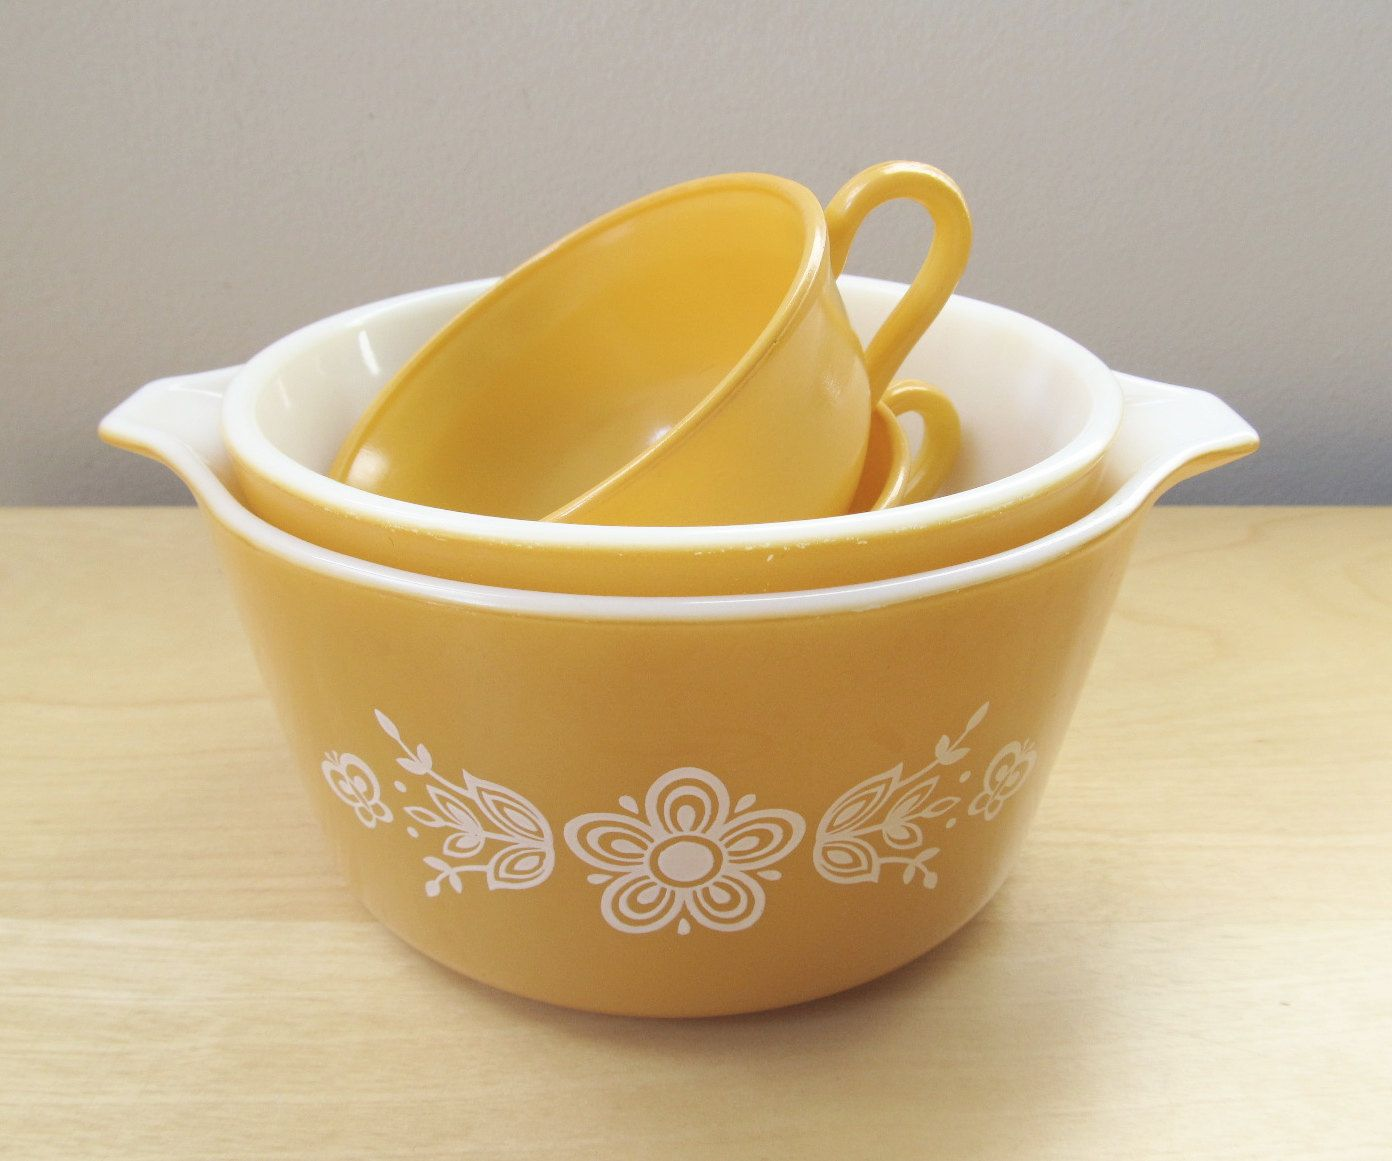 instant collection, harvest gold, vintage pyrex daisy mixing bowls ...